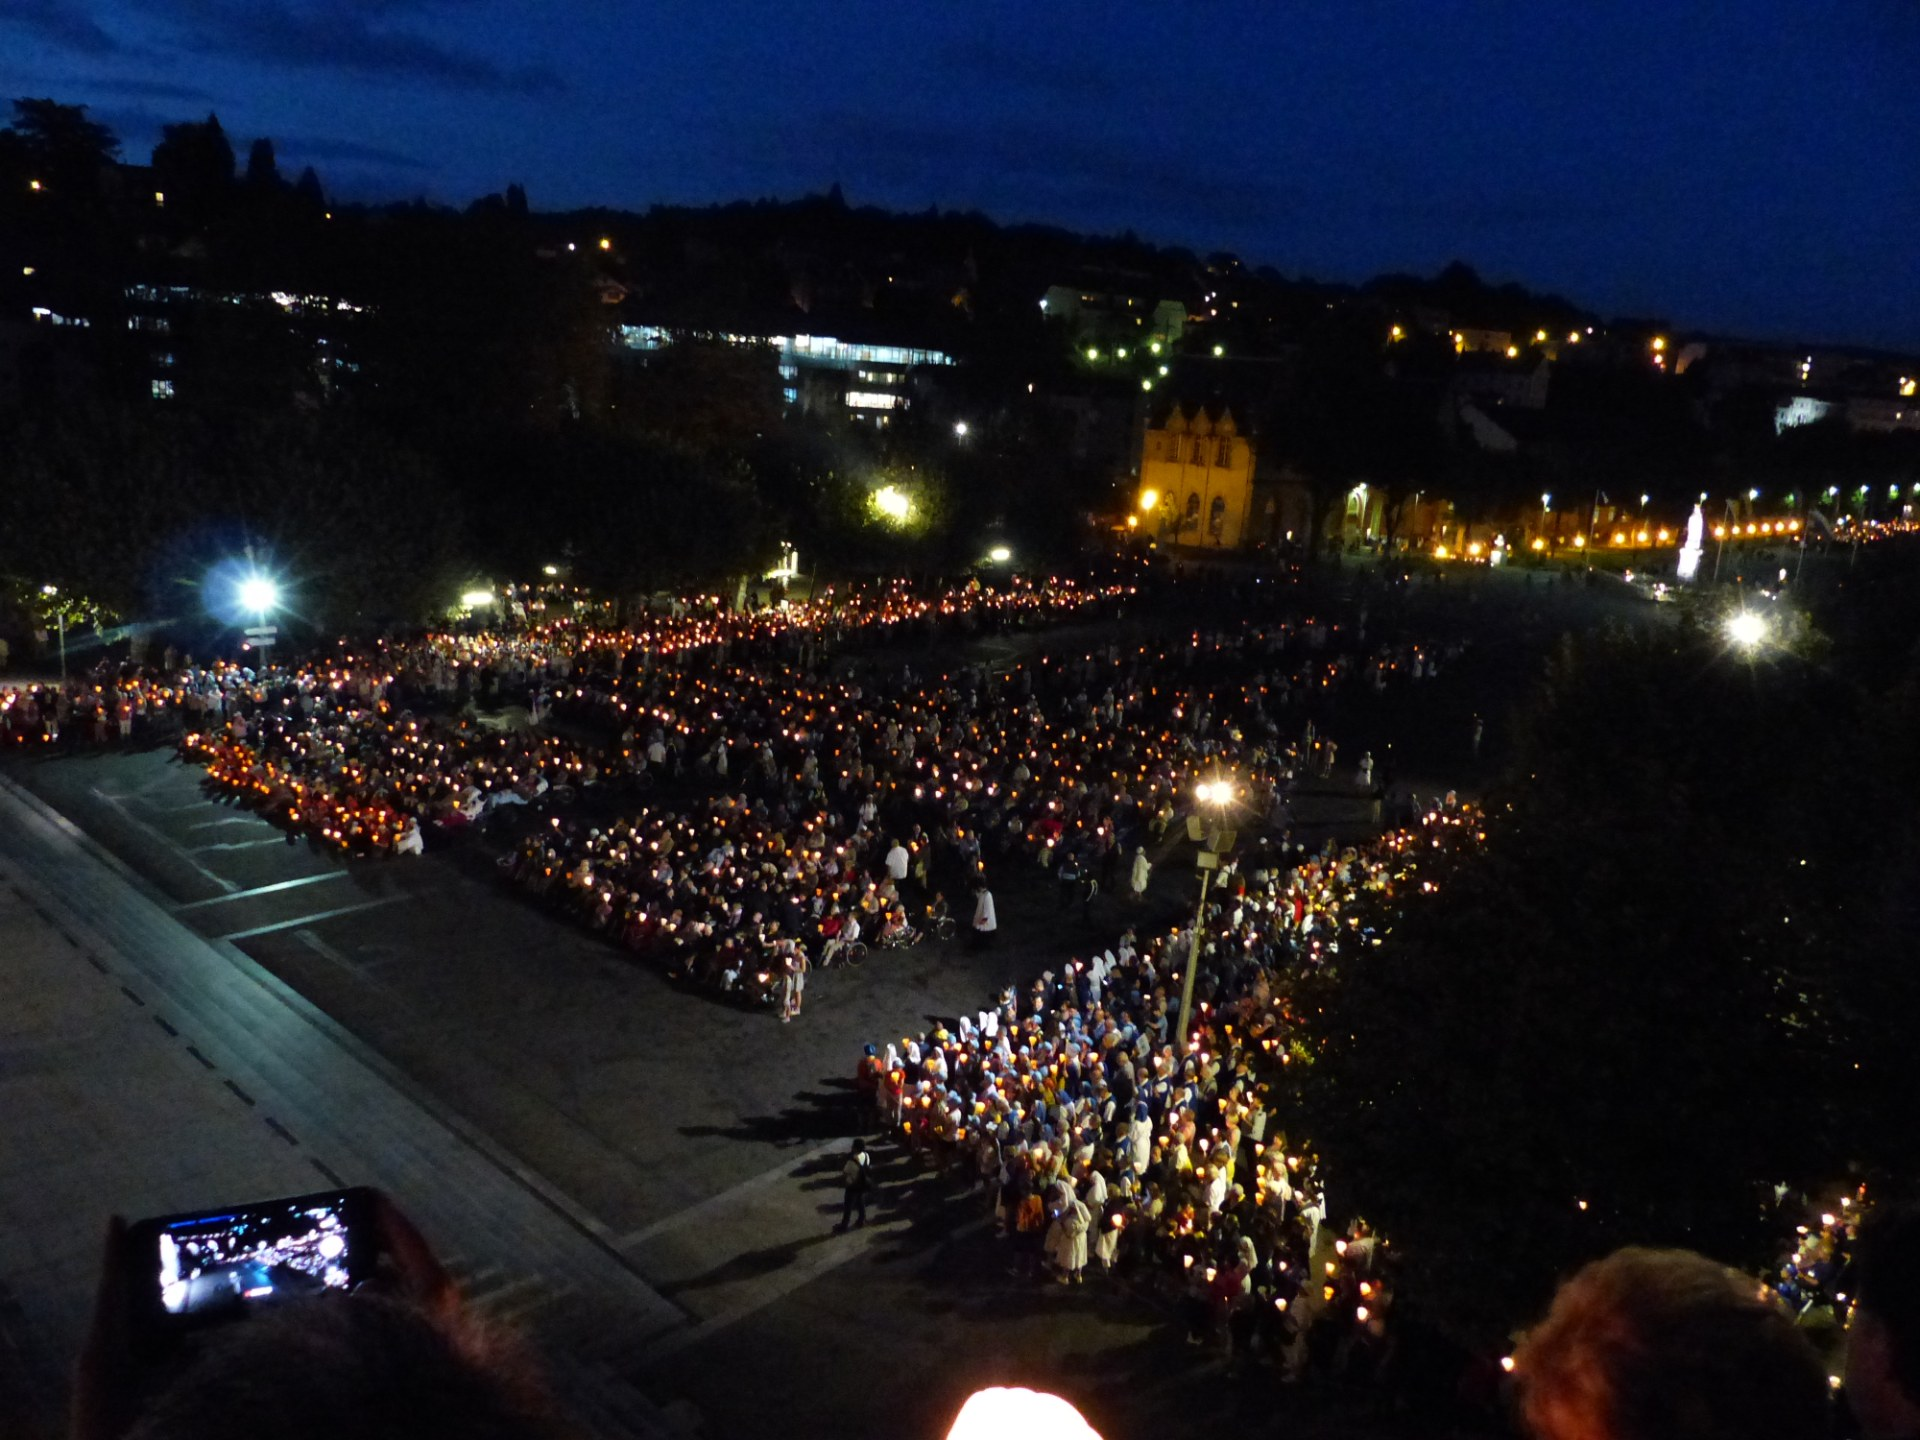 Lourdes2018-photos procession flambeaux 2 (1)